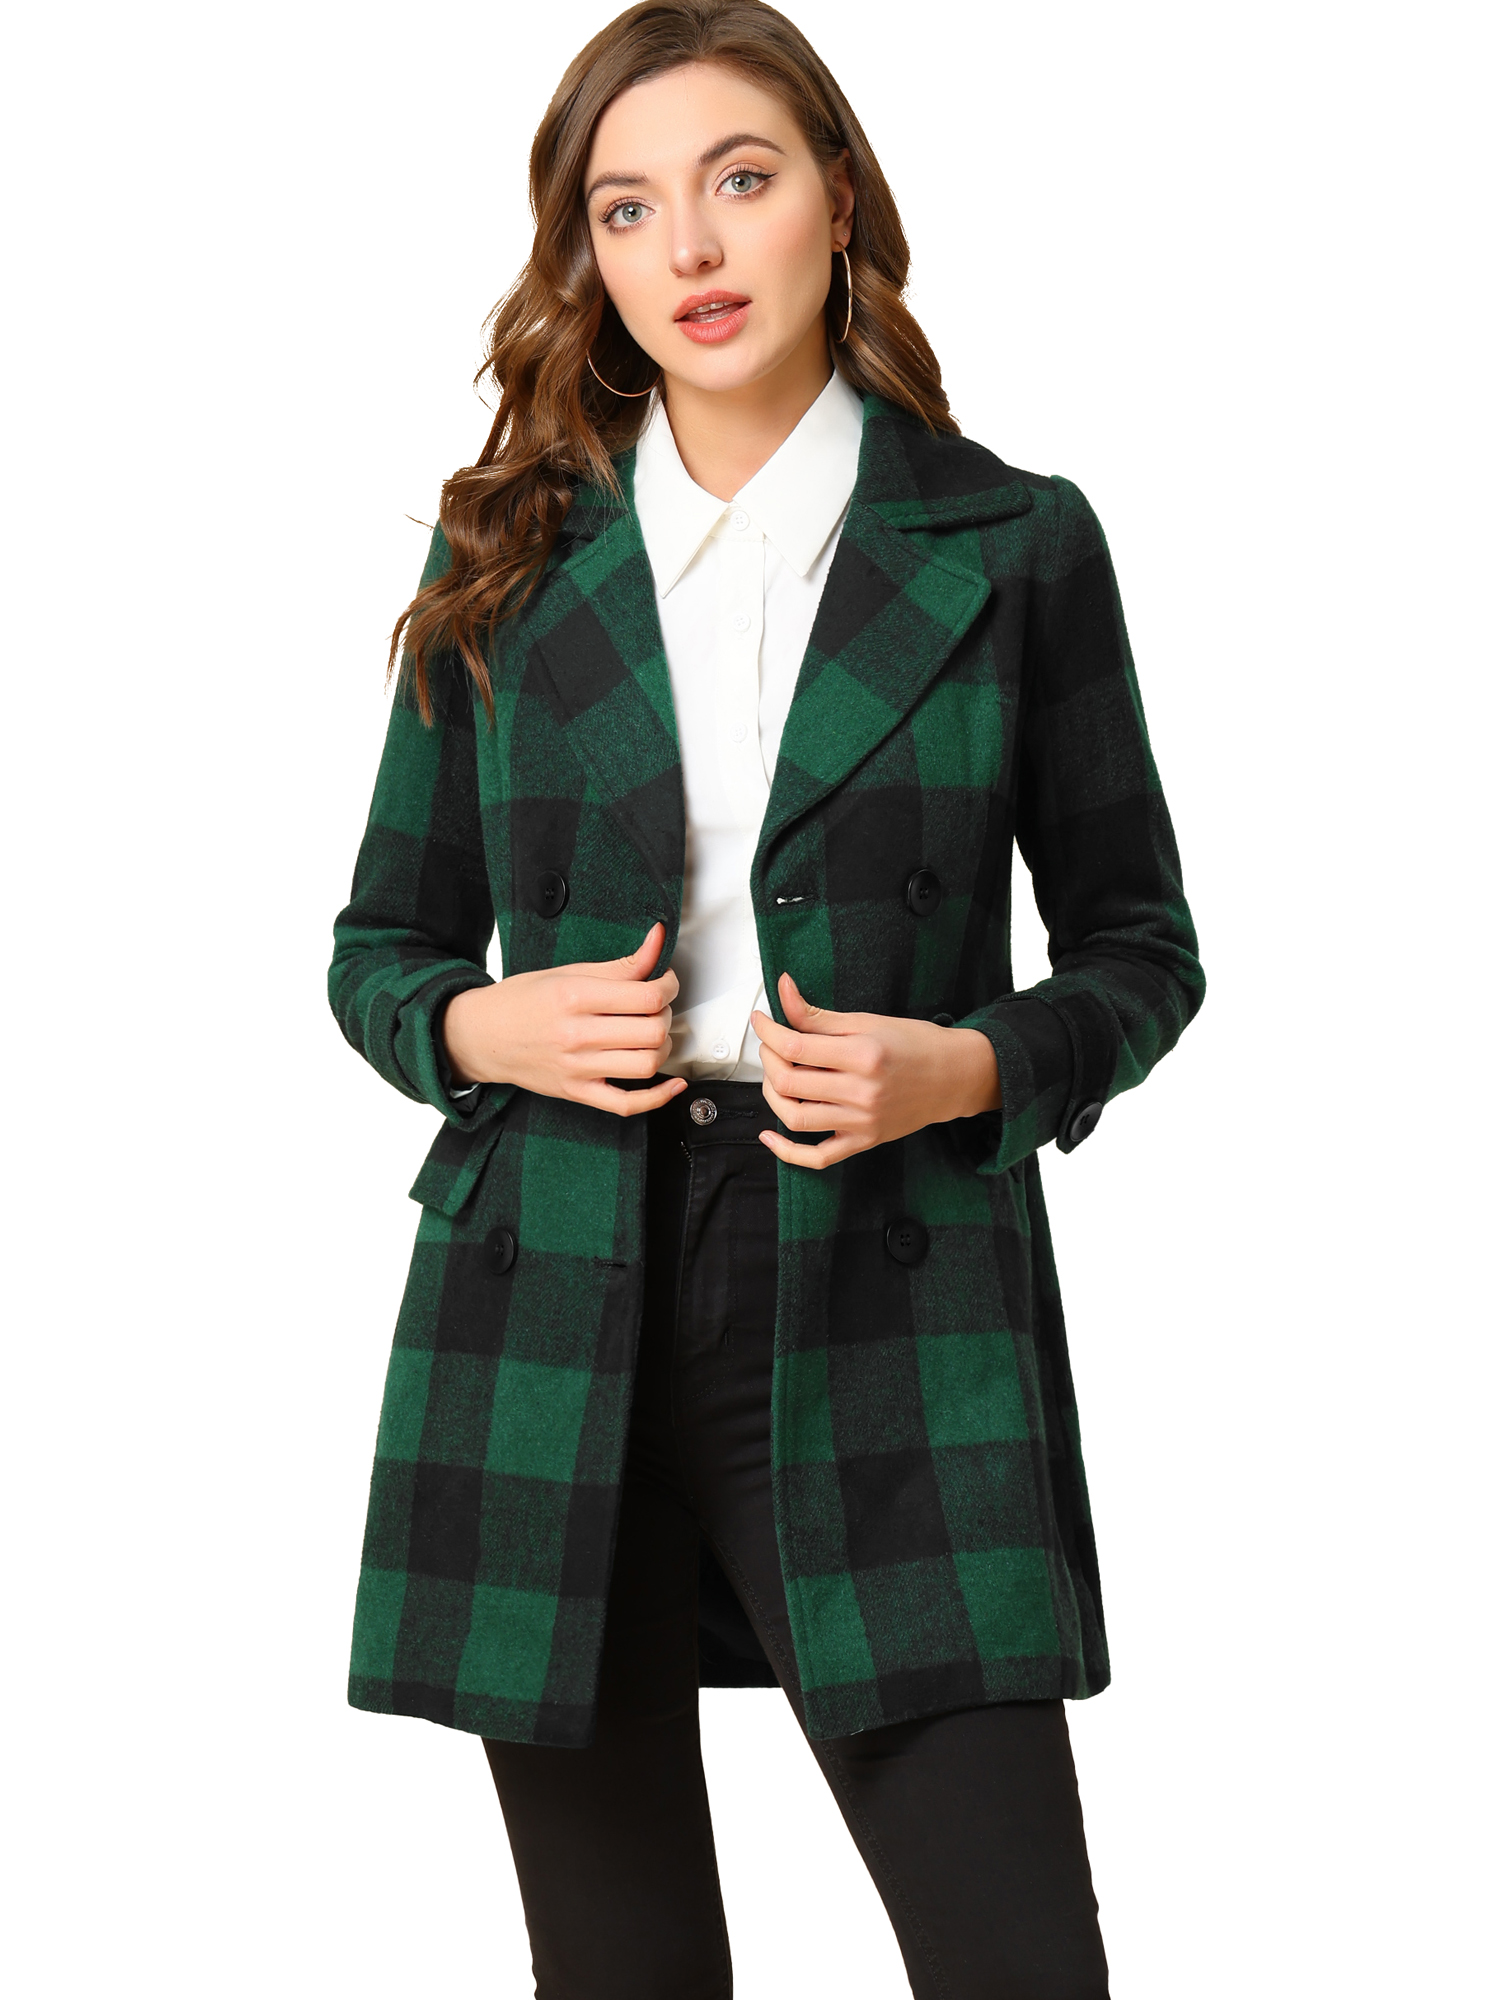 Women's Notched Lapel Double Breasted Plaids Coat Navy Blue Green XL